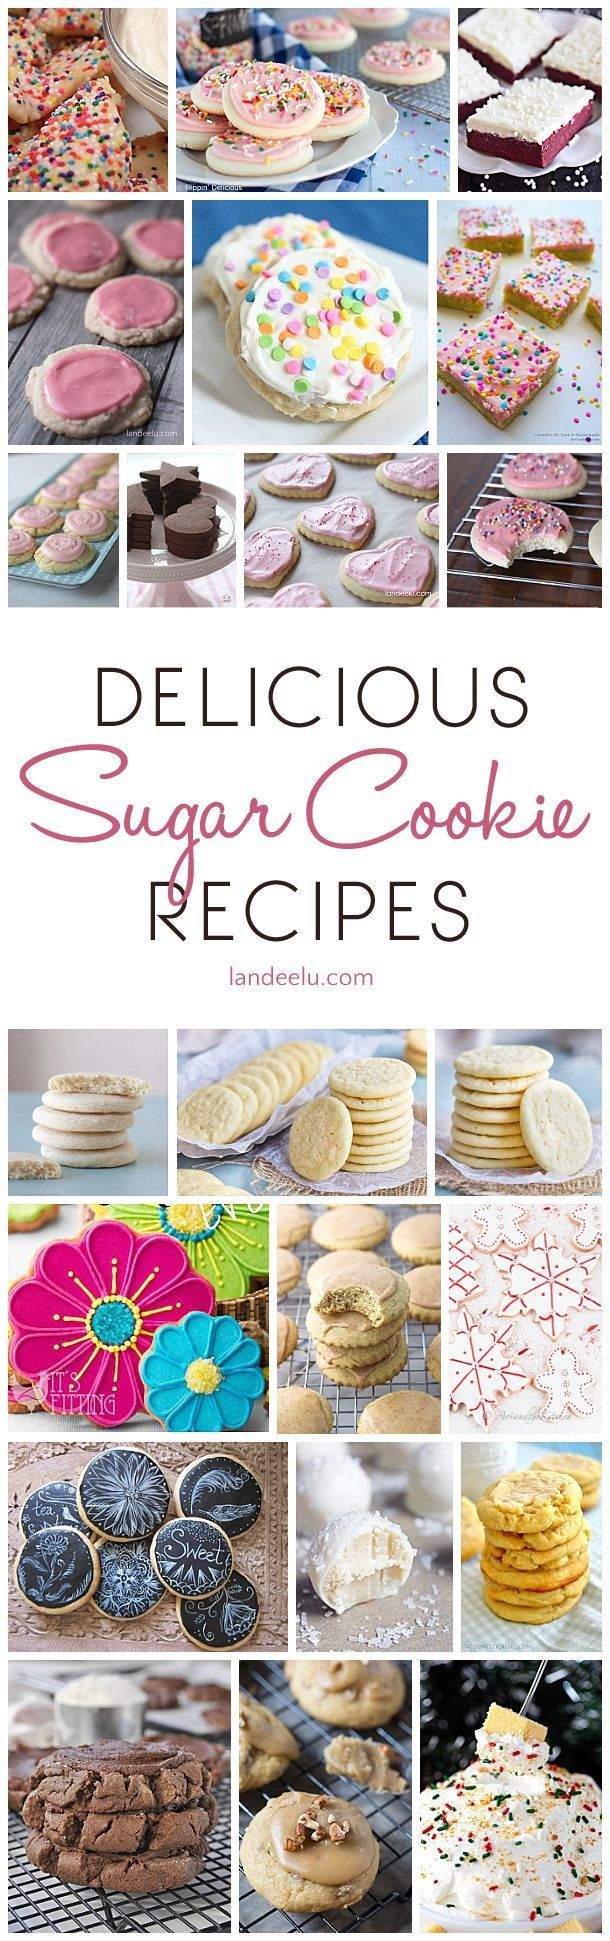 So many delicious sugar cookie recipes all in one place!